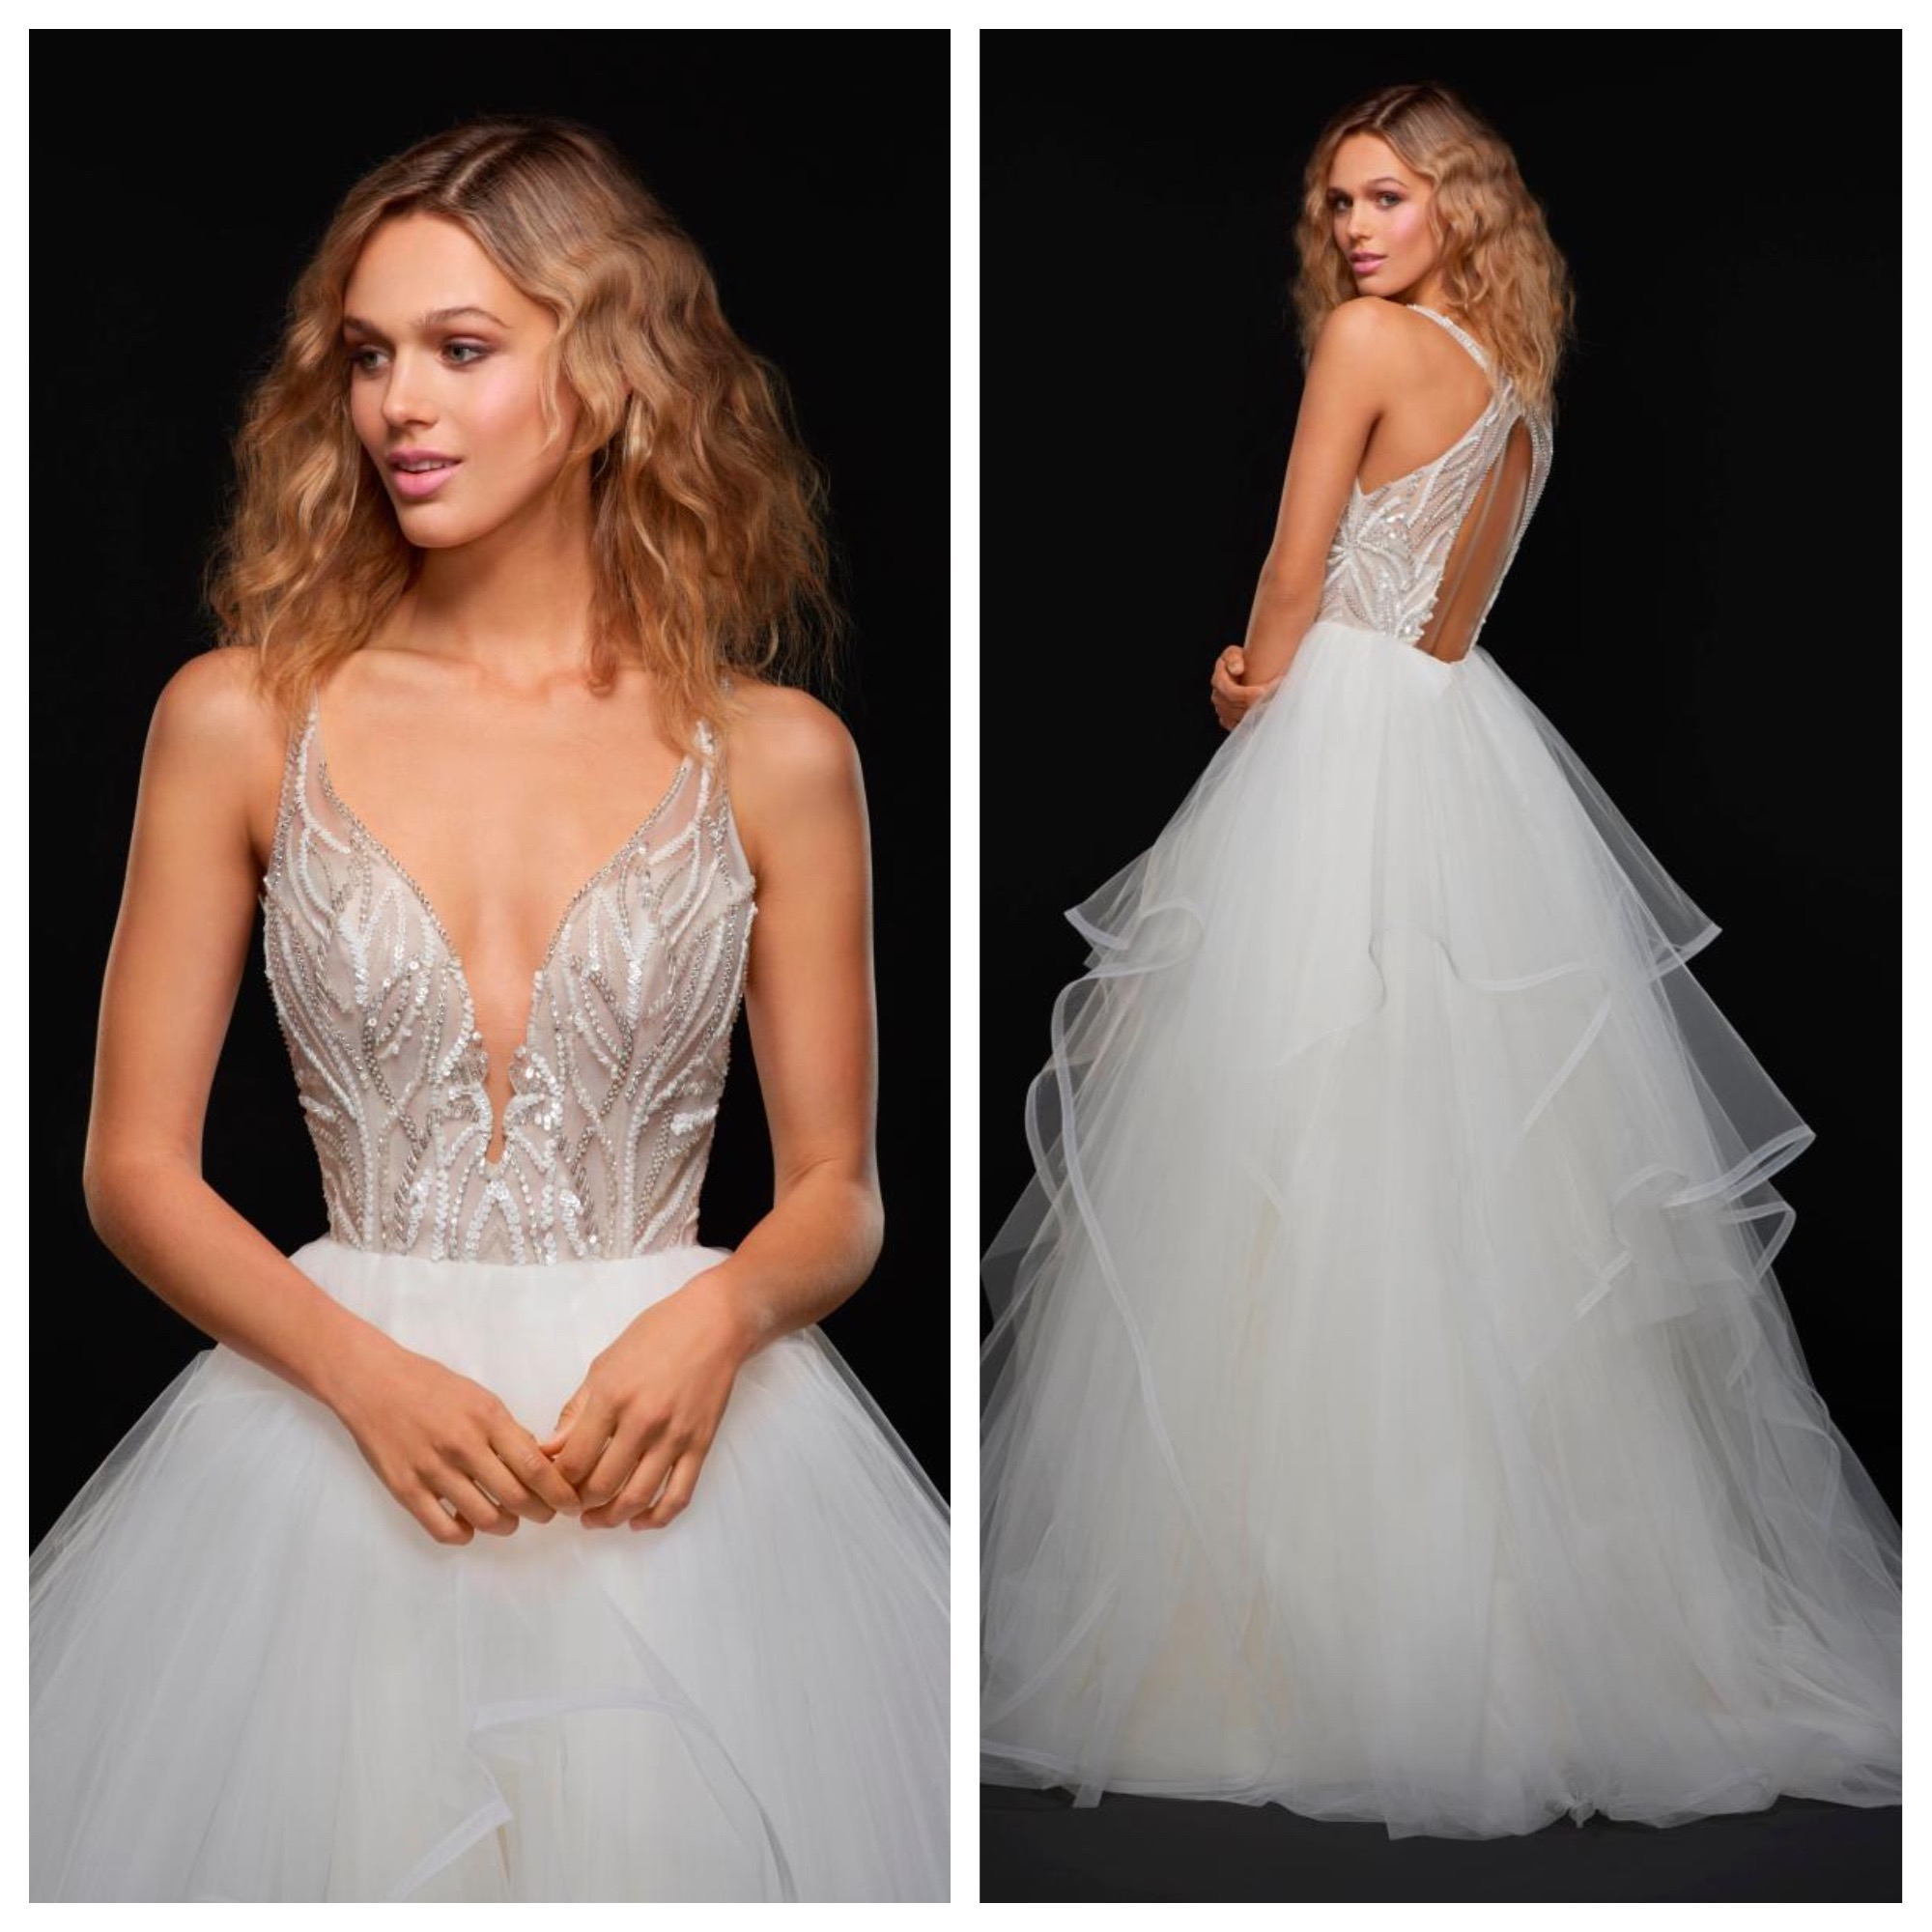 868aca95a340 For brides who know and love Hayley Paige the Lincoln gown is an absolute  must try! With it's signature HP sparkle, full skirt and open back Lincoln  is ...